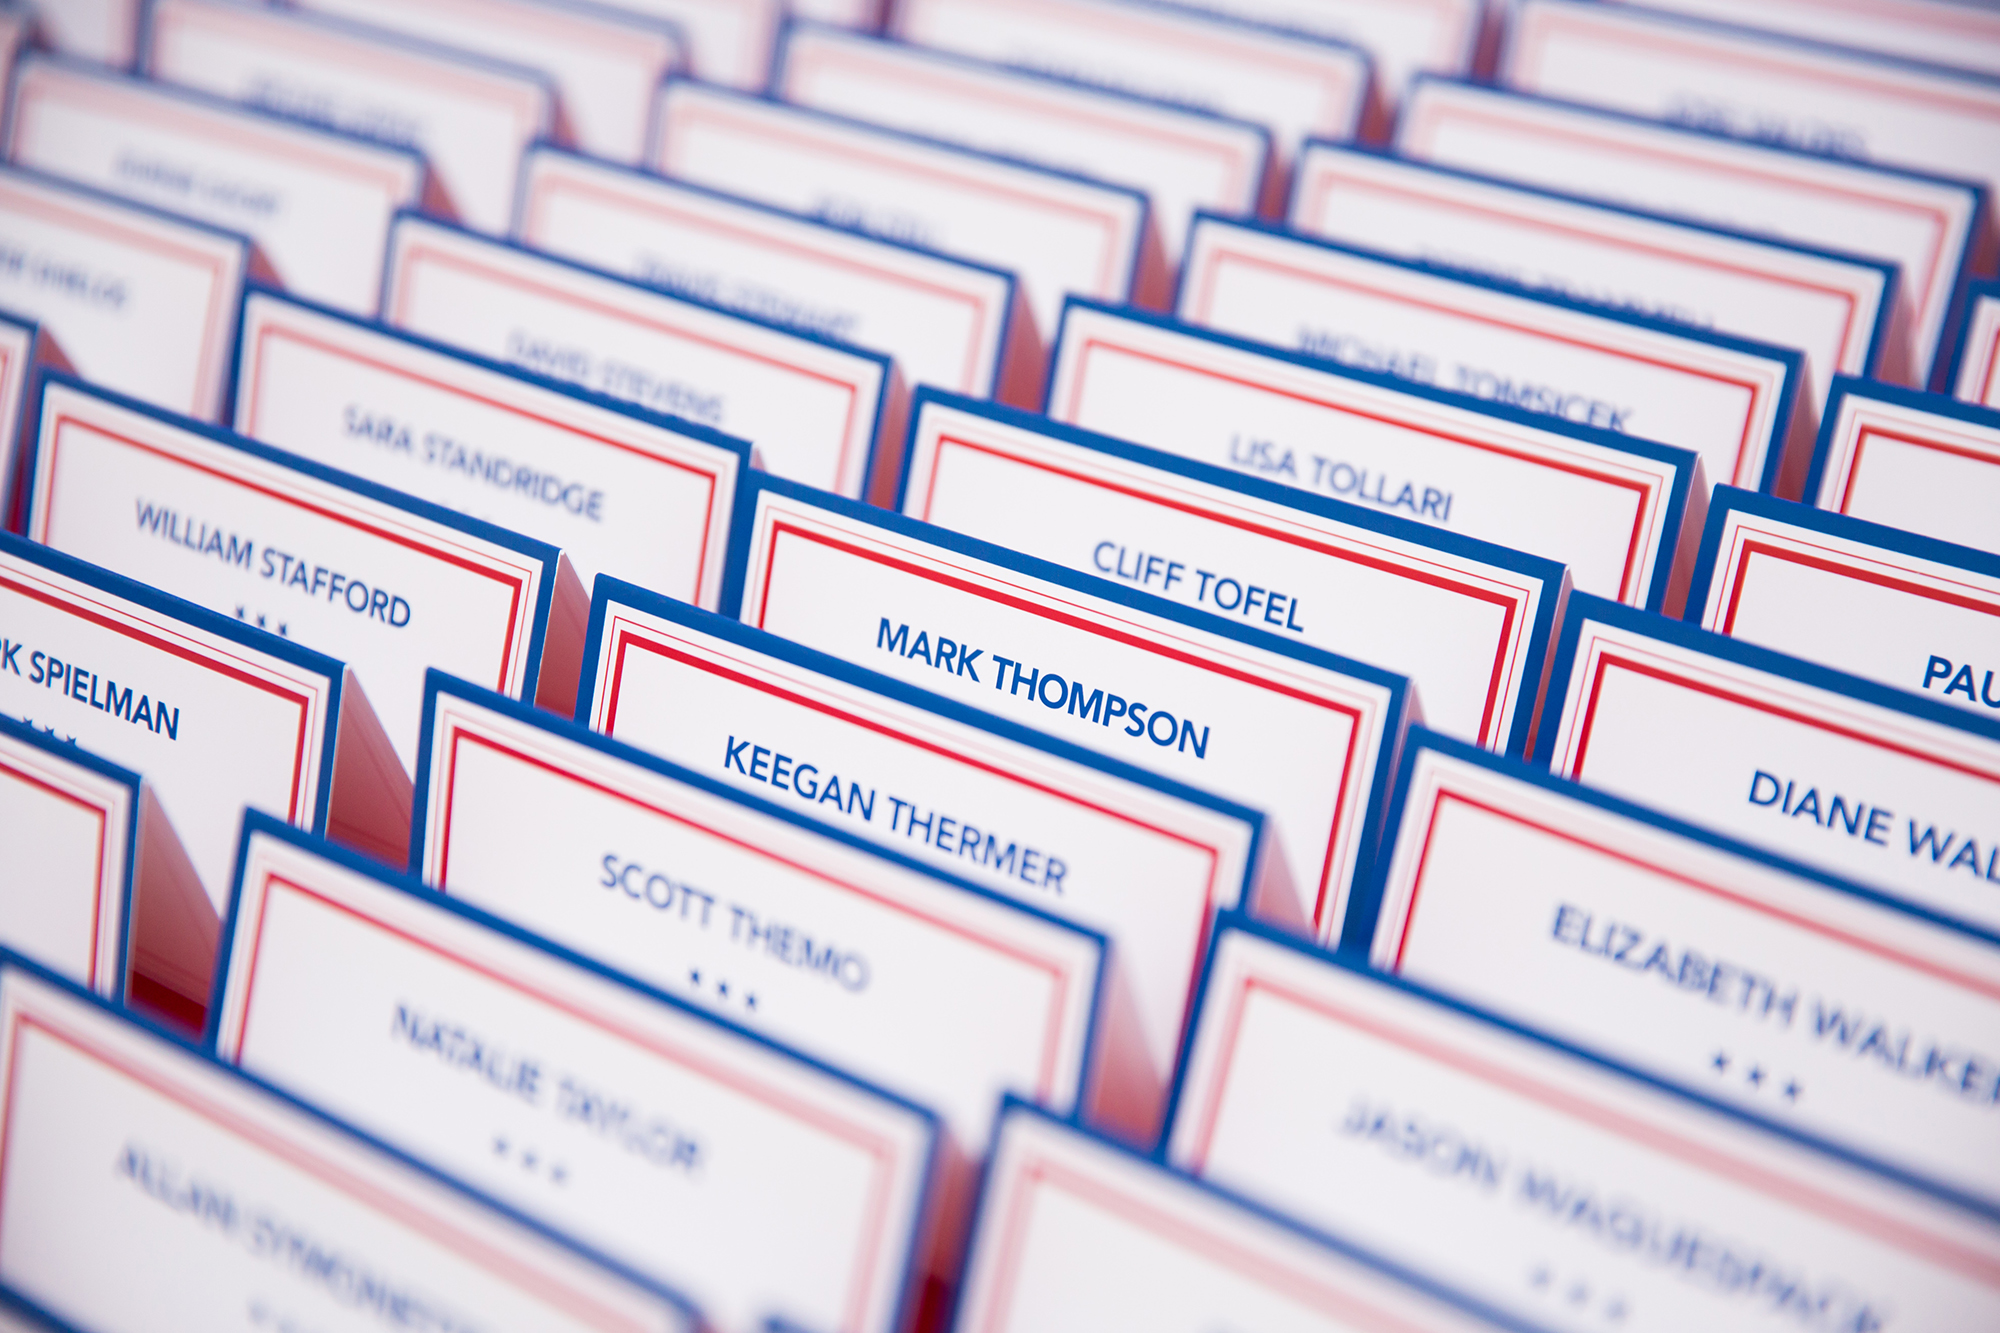 01_Corporate Client Appreciation American Theme Place Cards_AE Events.jpg